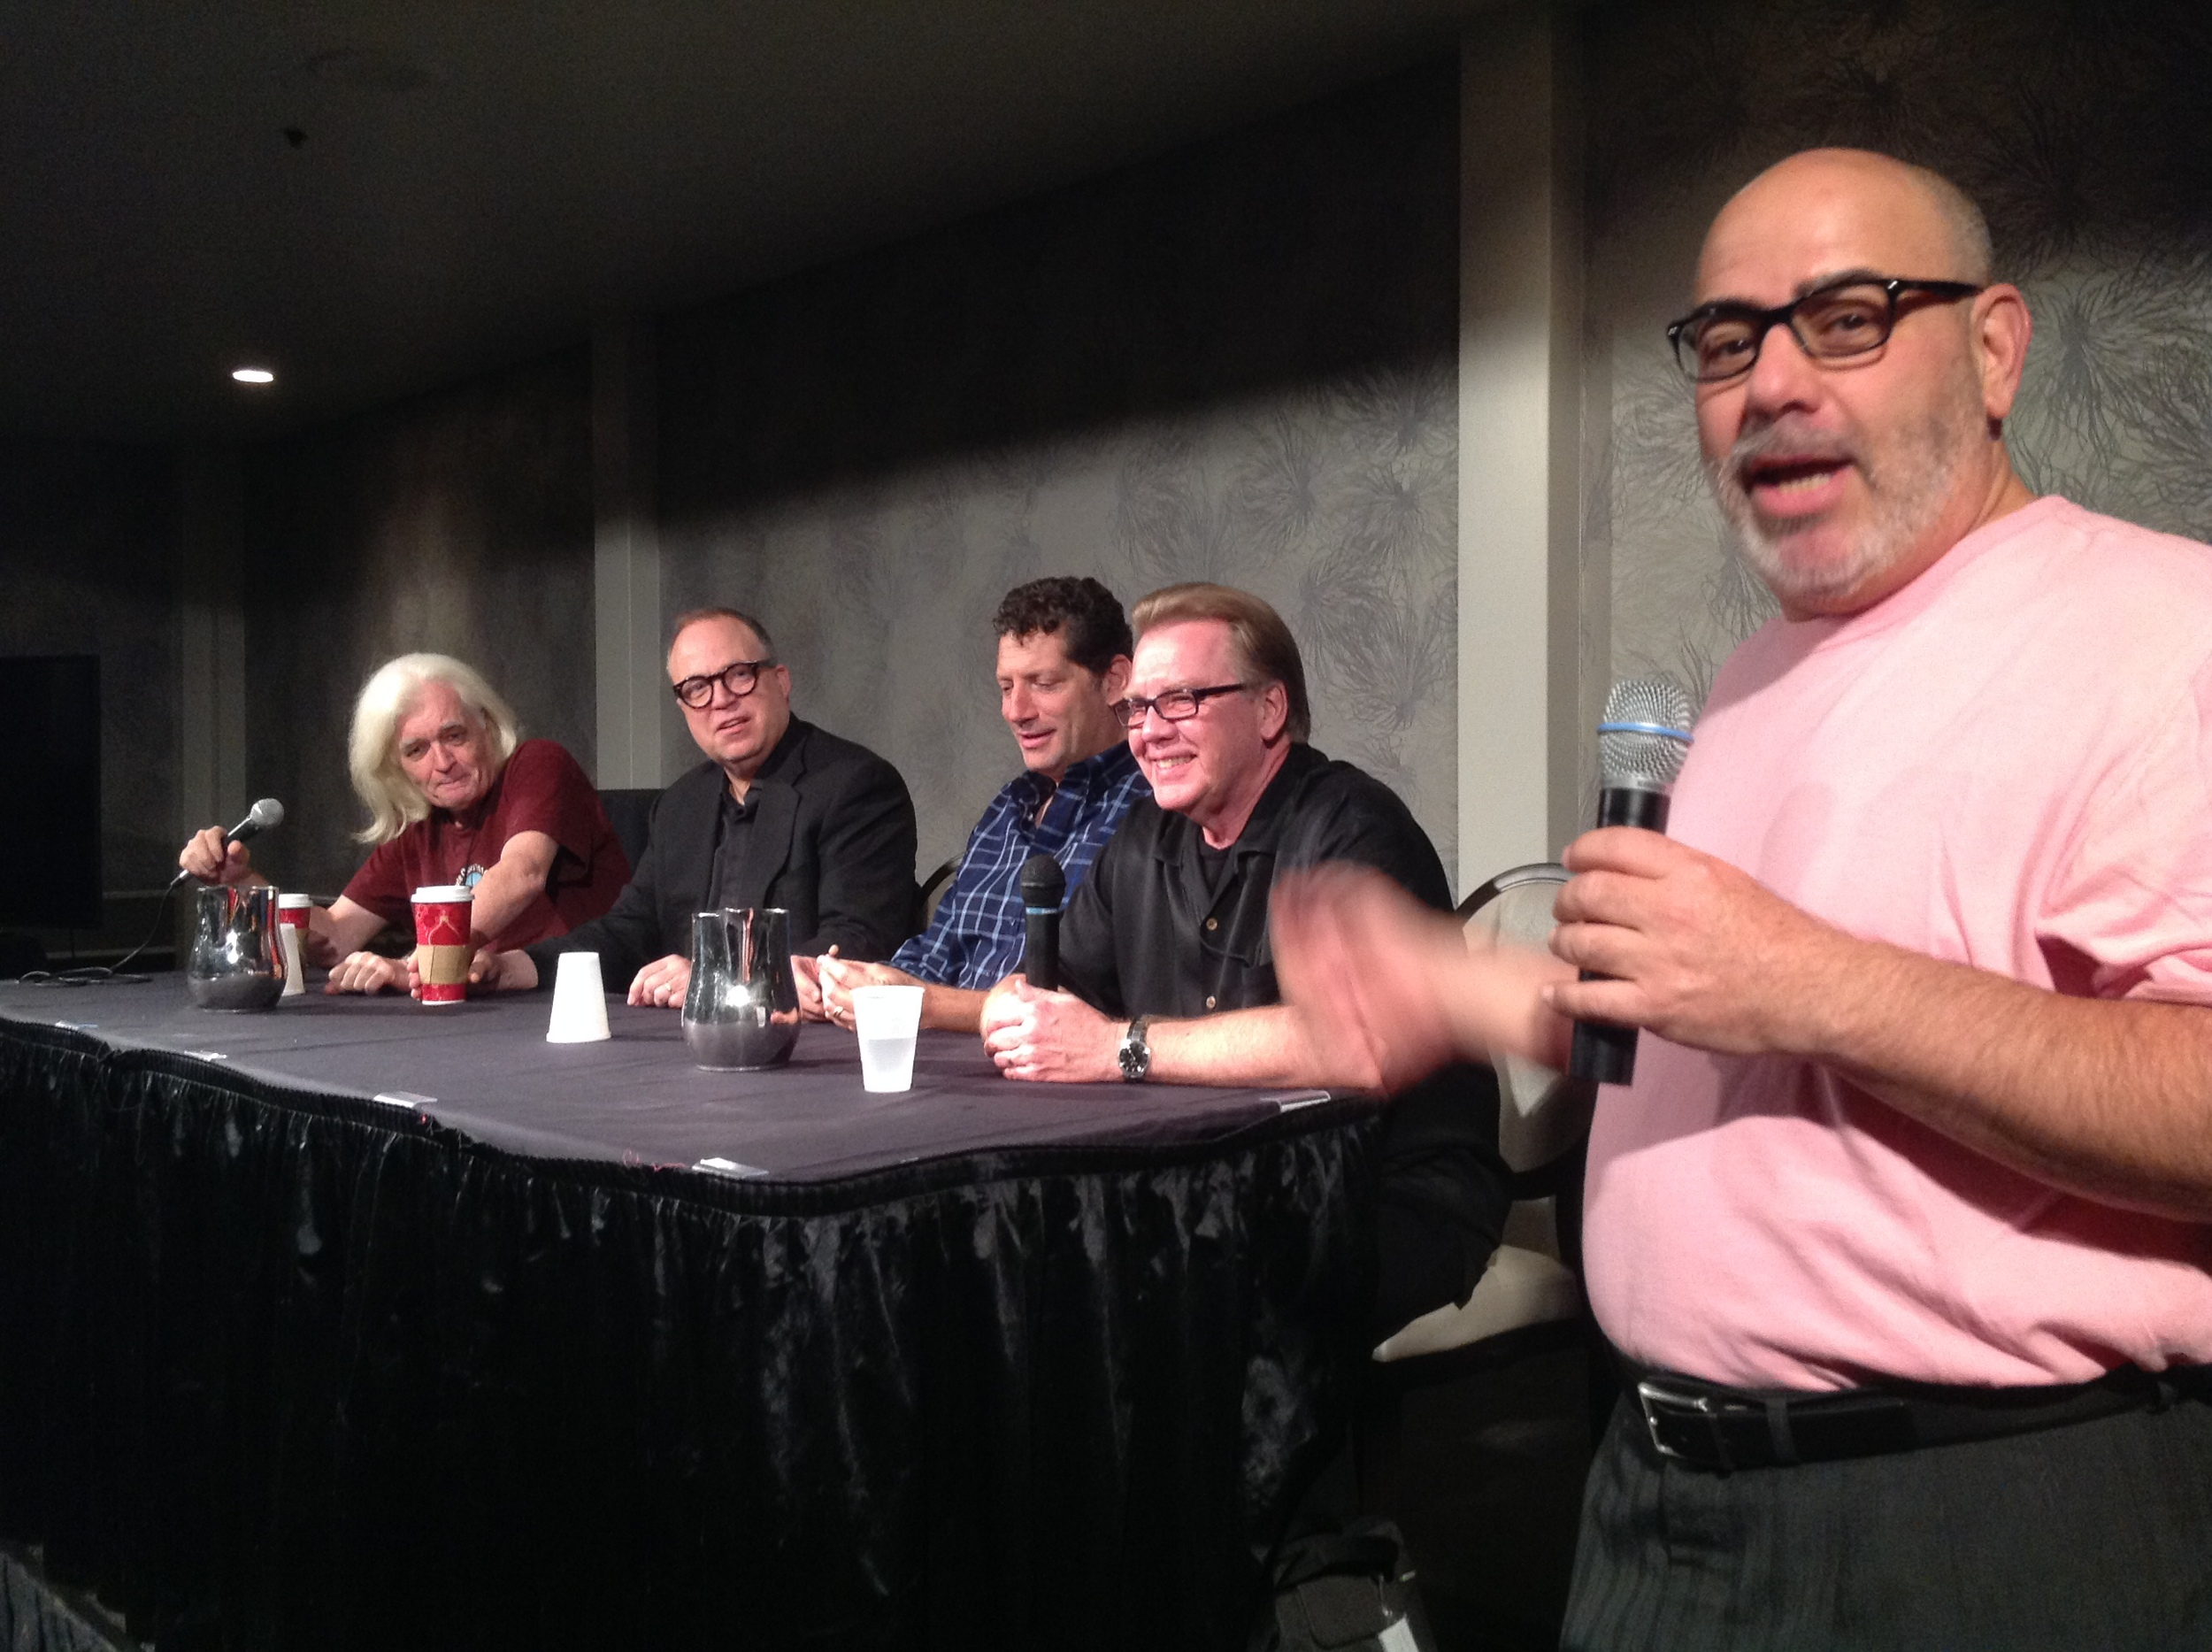 Panel discussion on Q&A